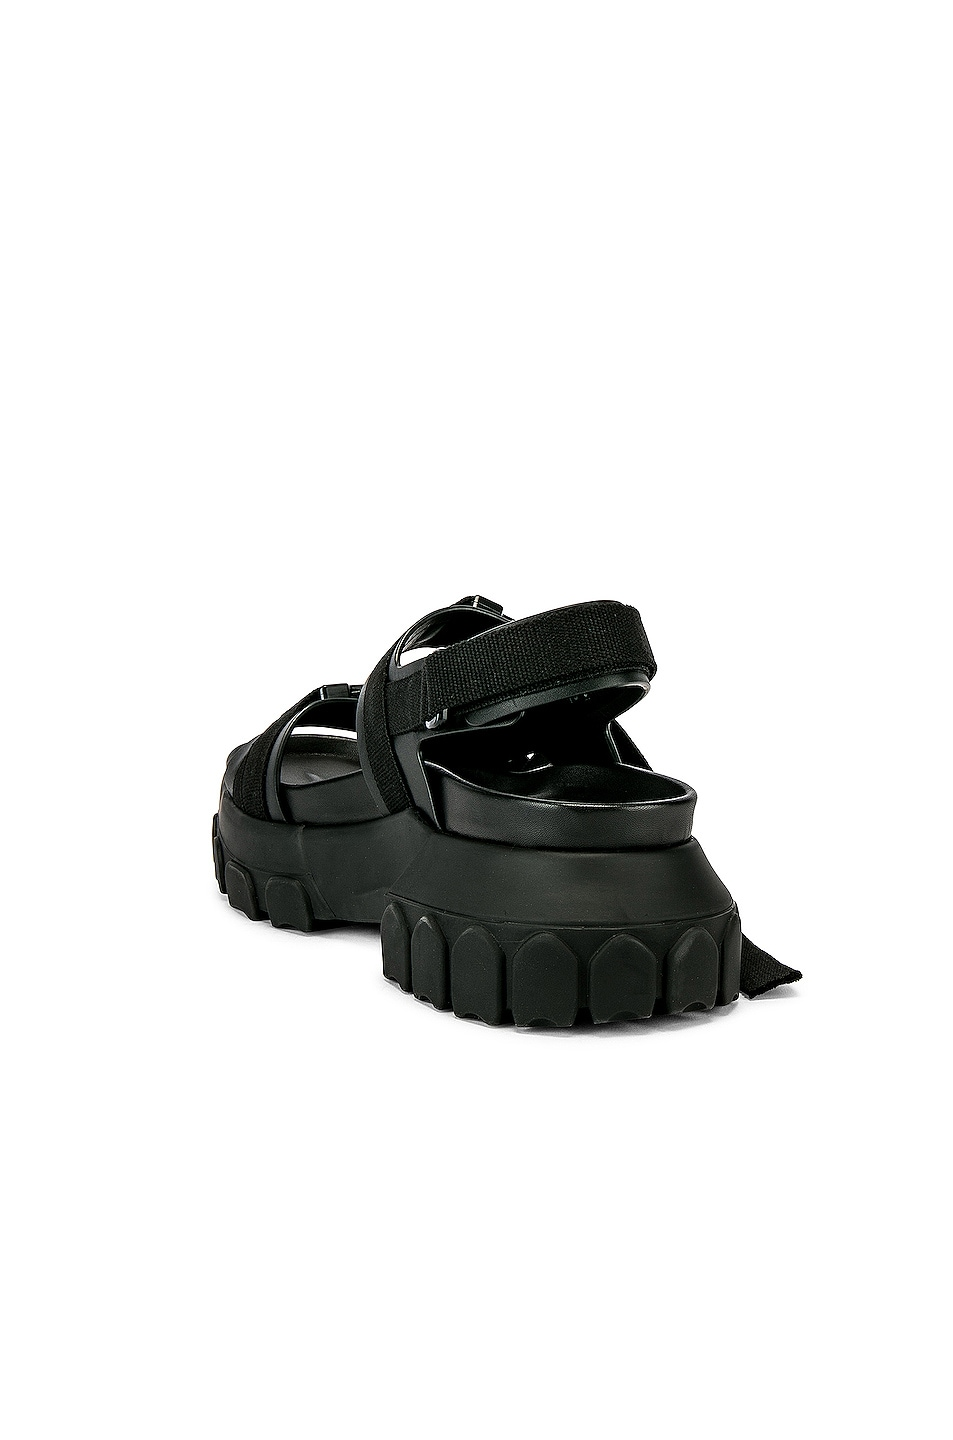 Image 3 of Rick Owens Tractor Sandals in Black